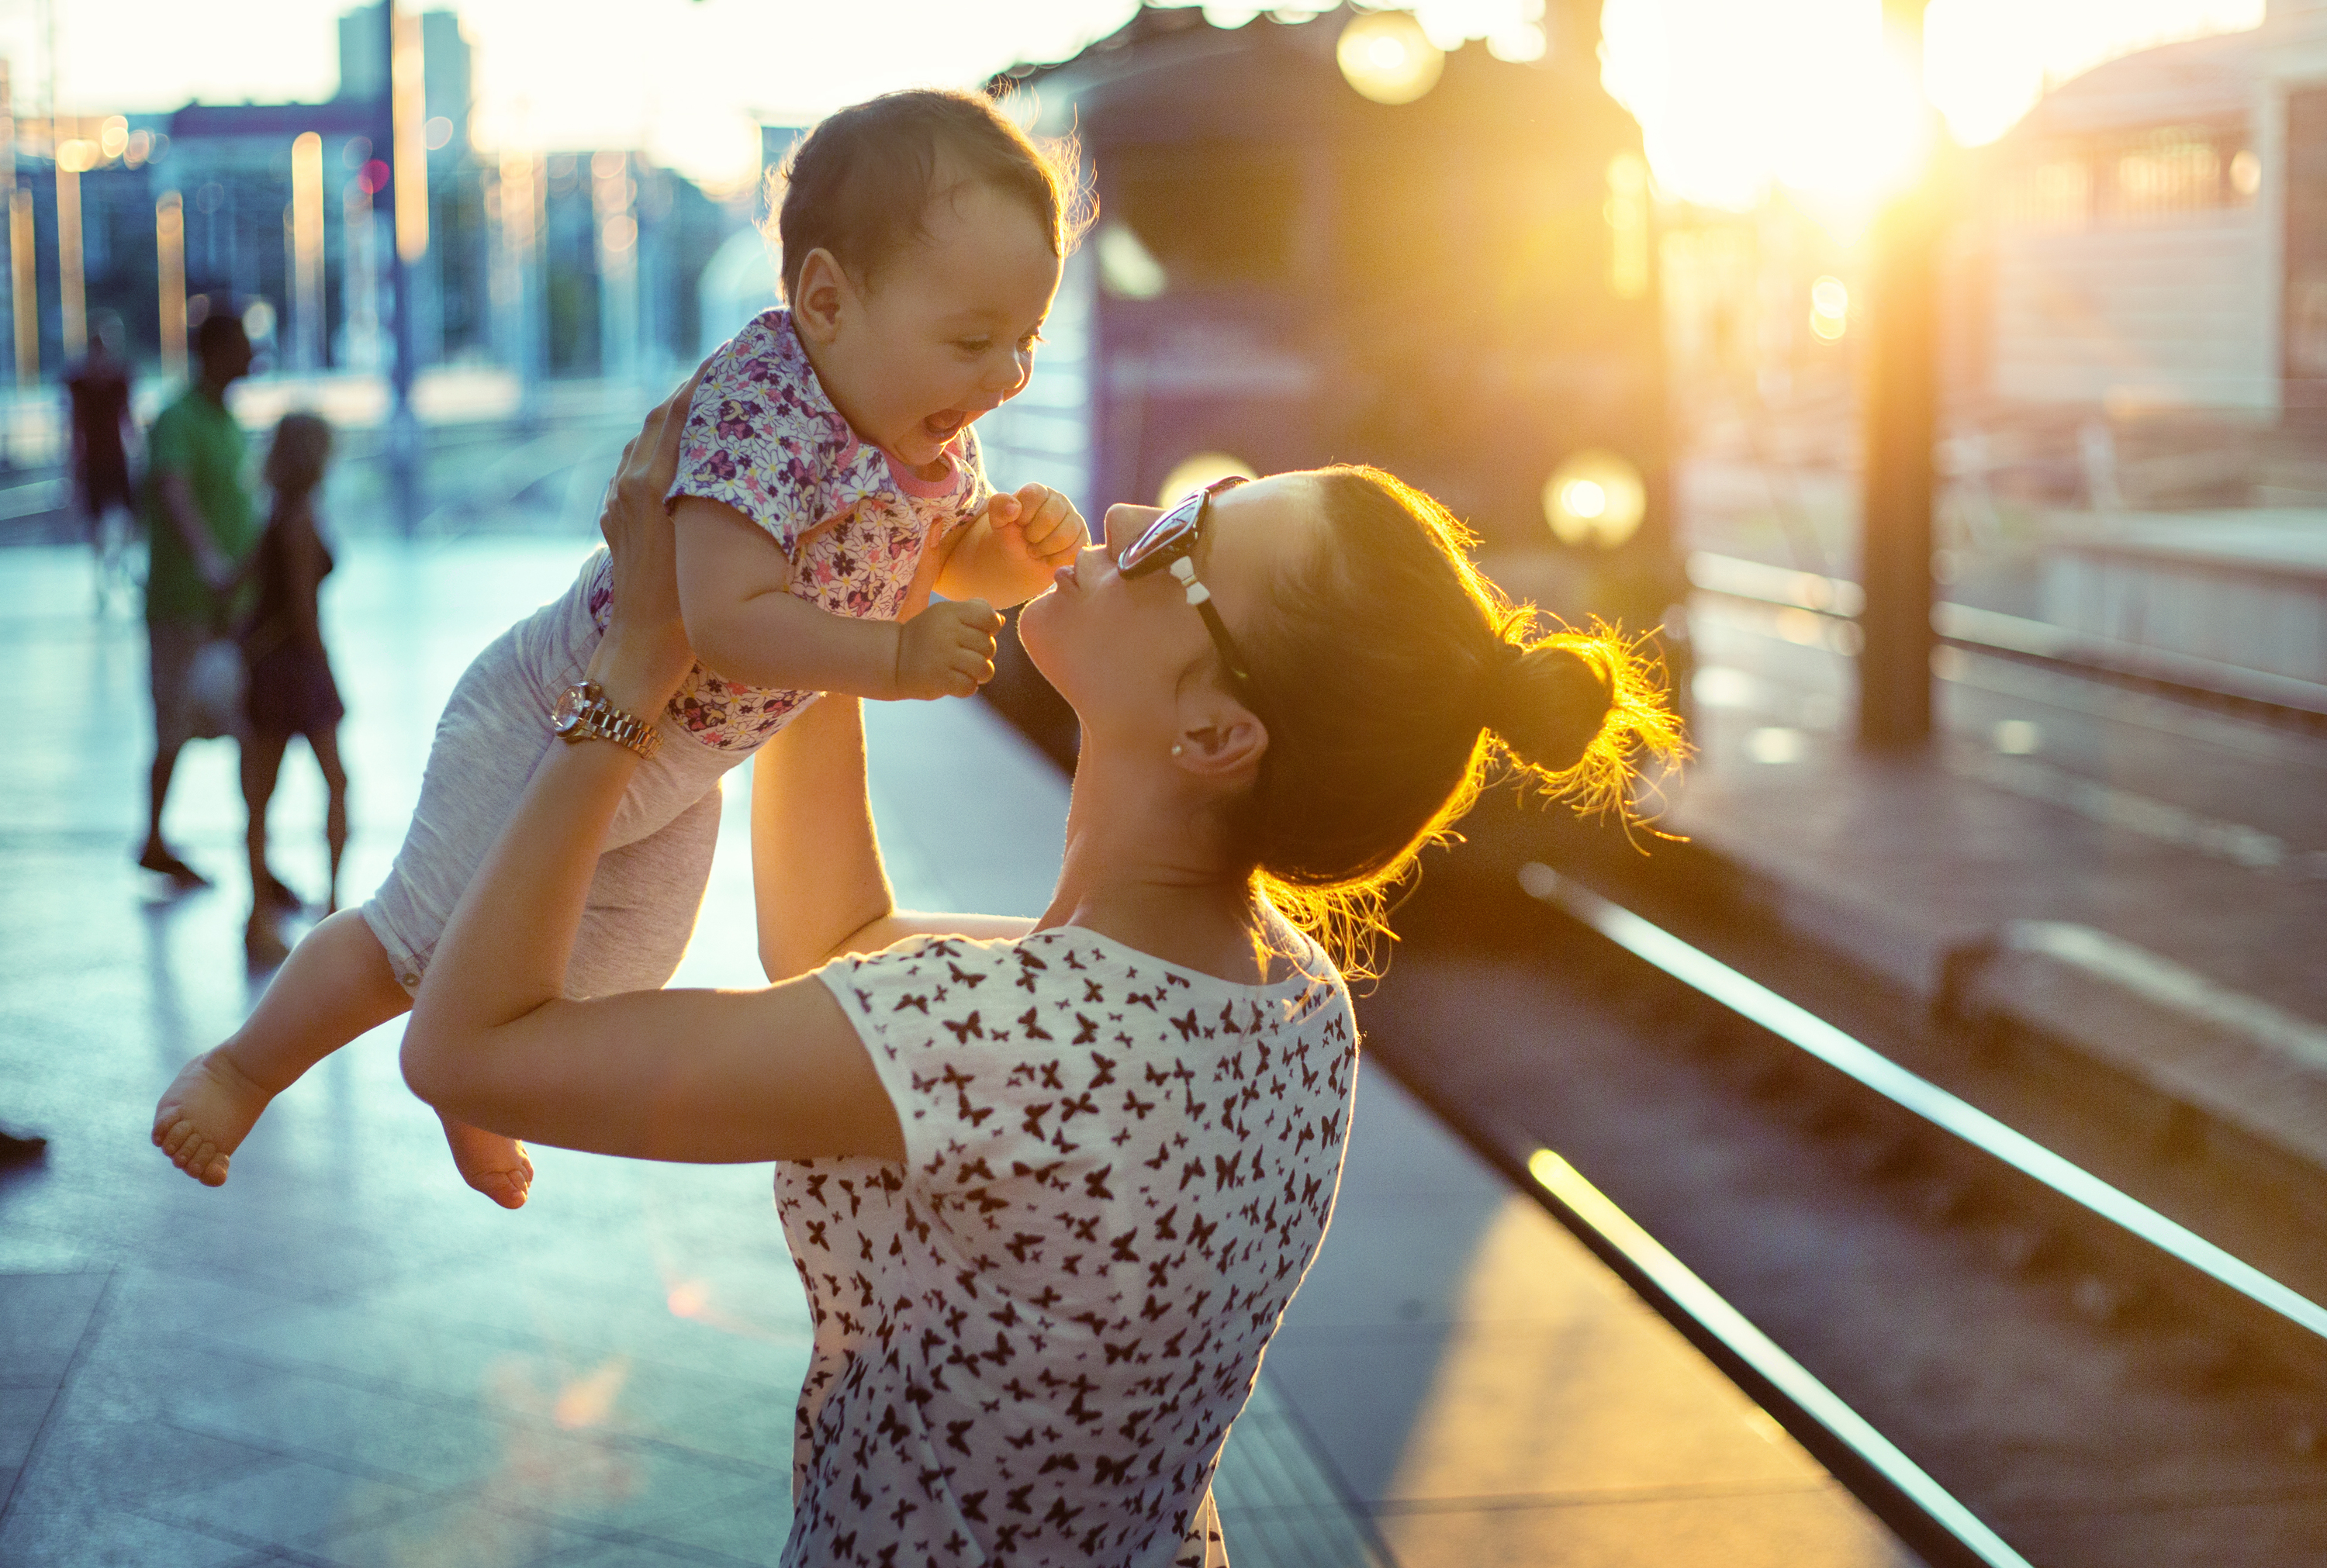 13 ways being a mom (or dad) is different in NYC than anywhere else